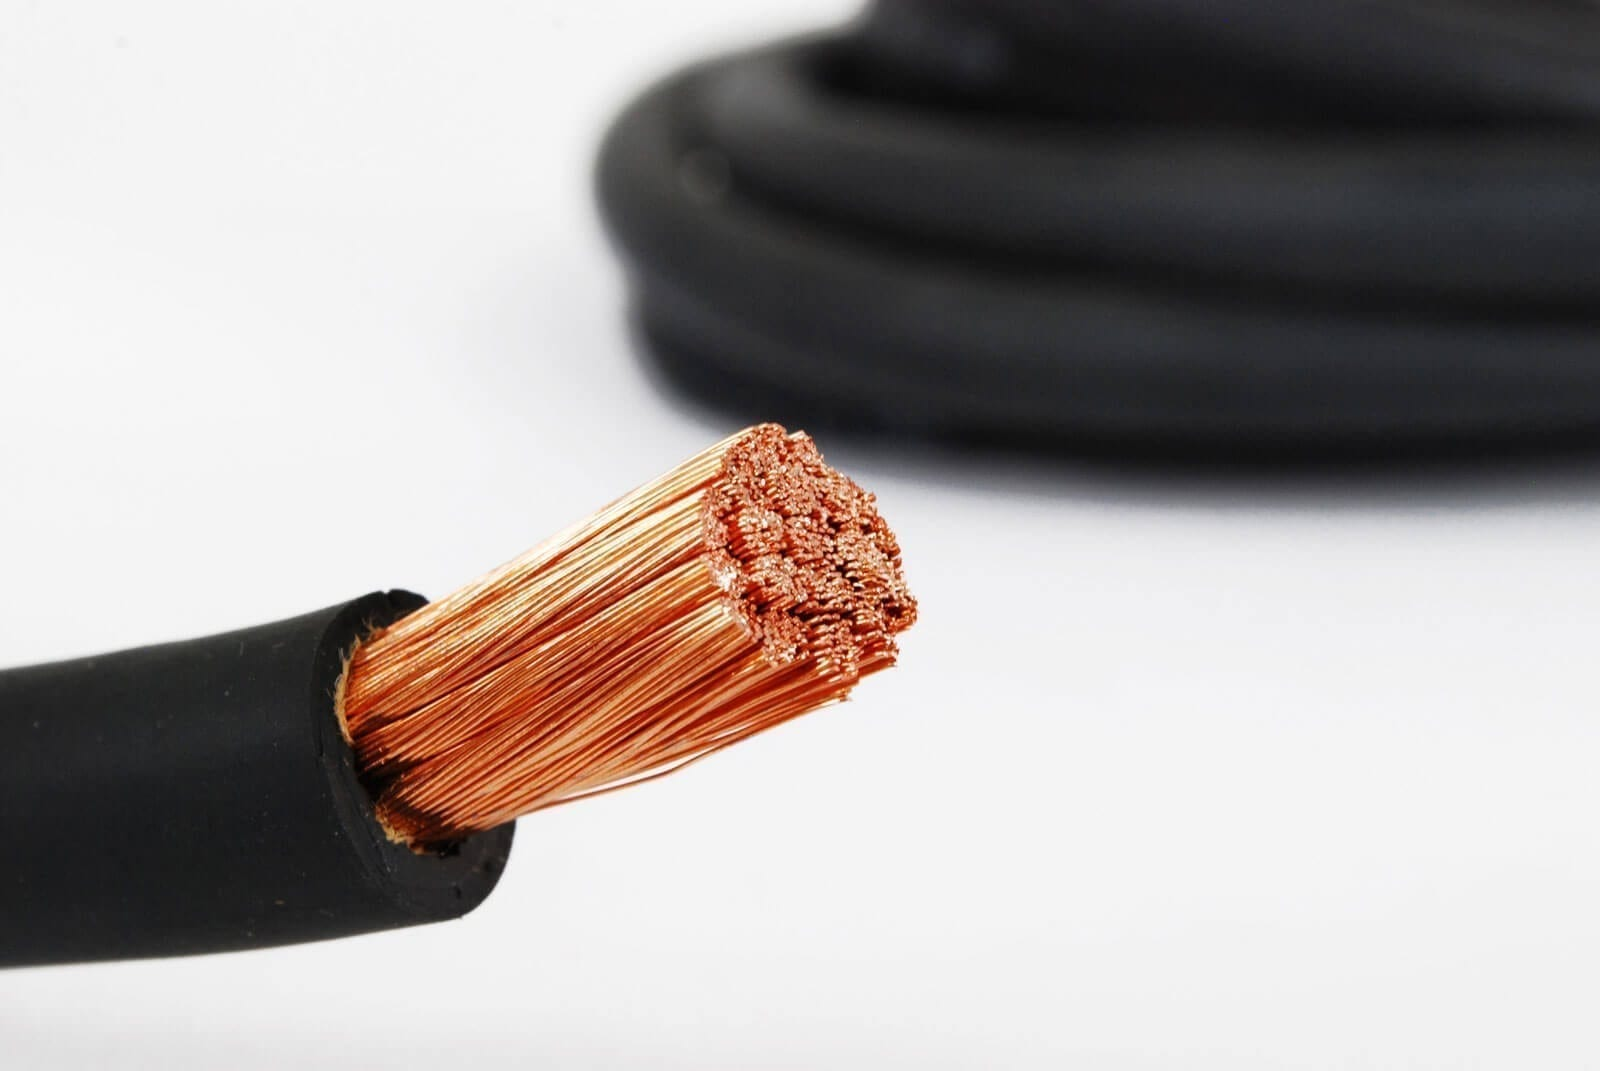 Welding Cable, 2/0 Gauge Wire, 100ft / 30.5m Long - Global Solar Supply